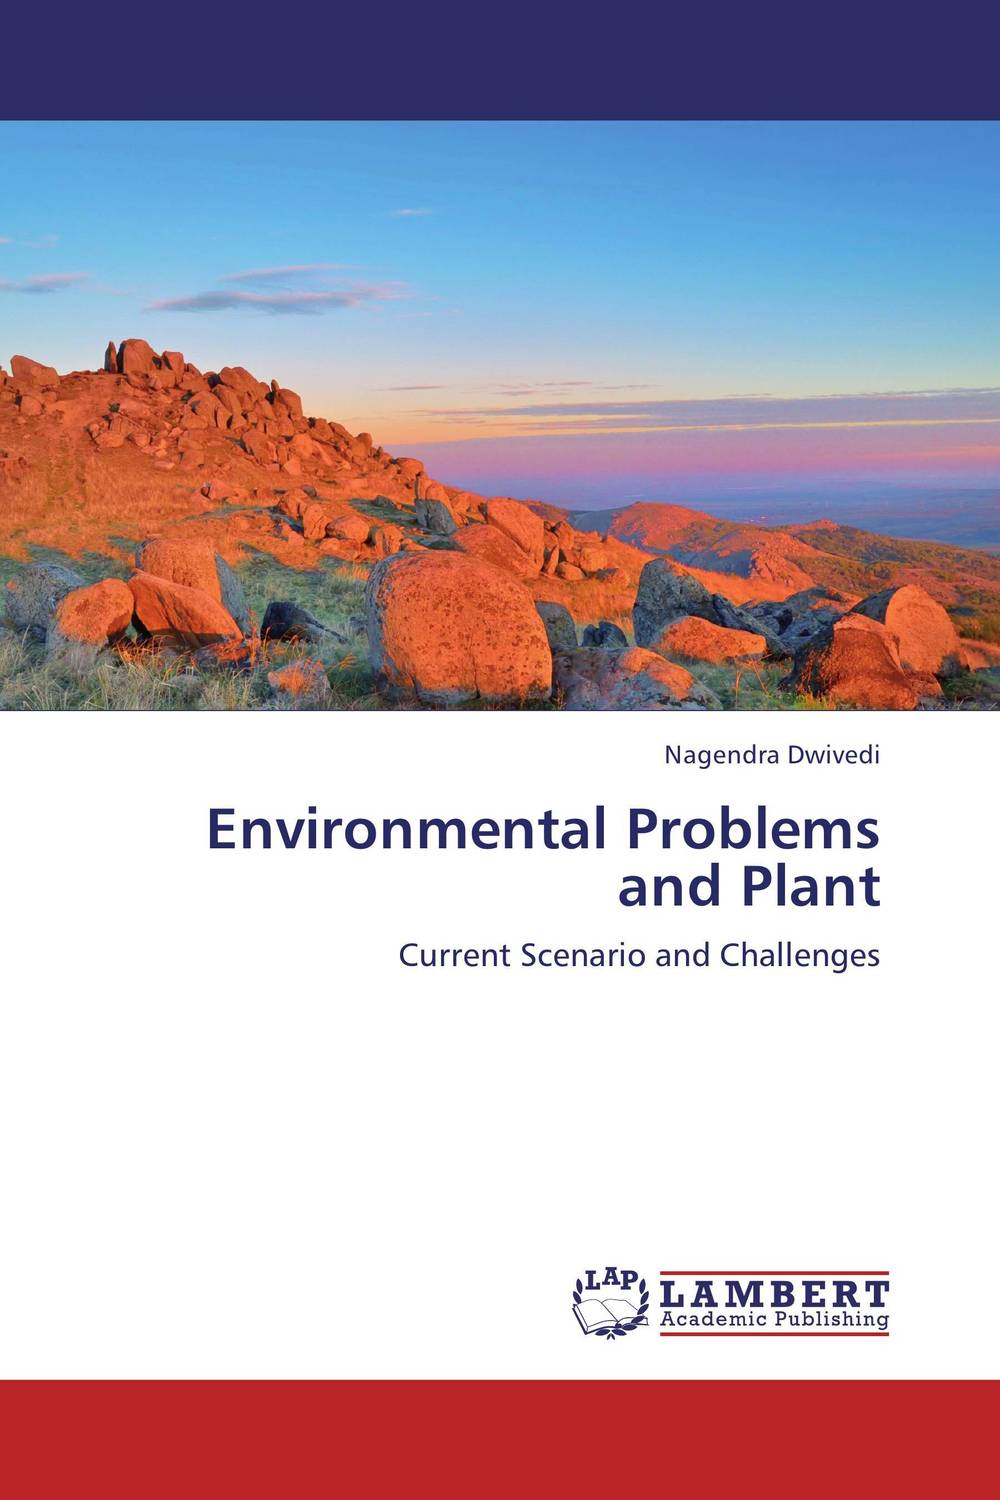 Environmental Problems and Plant impact of micro enterprises on plant diversity and rural livelihood